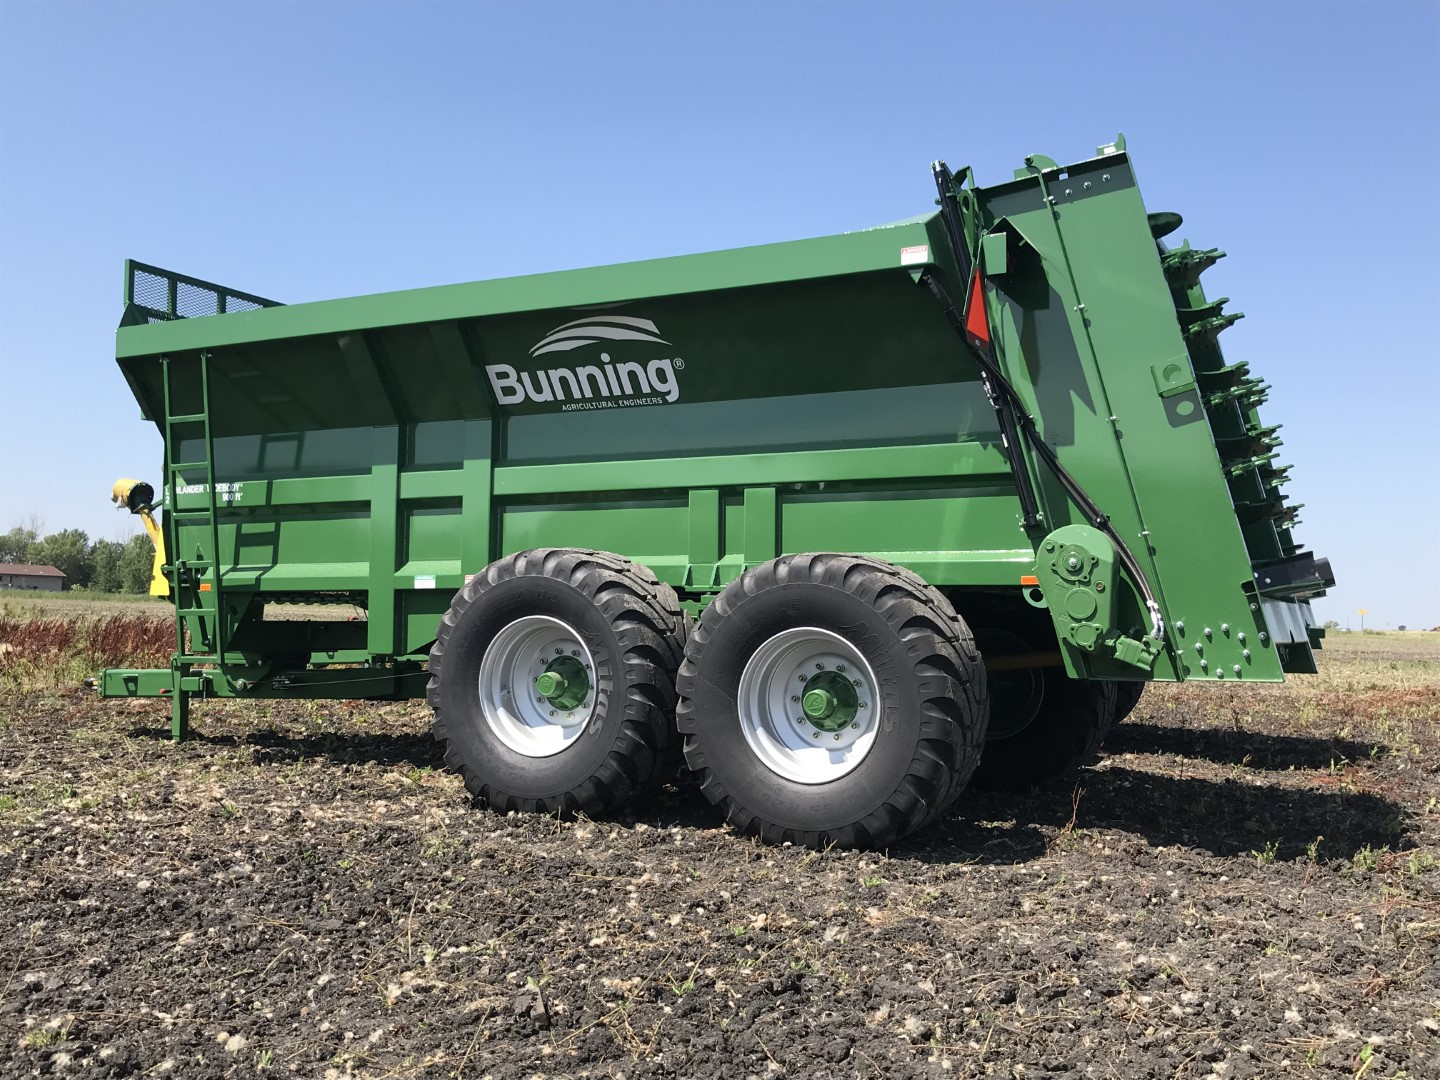 Lowlander 230 TVA Widebody with slurry door, built in extensions, sprung drawbar, lift off augers, stone guard extension and 650/55 R26.5 wheels